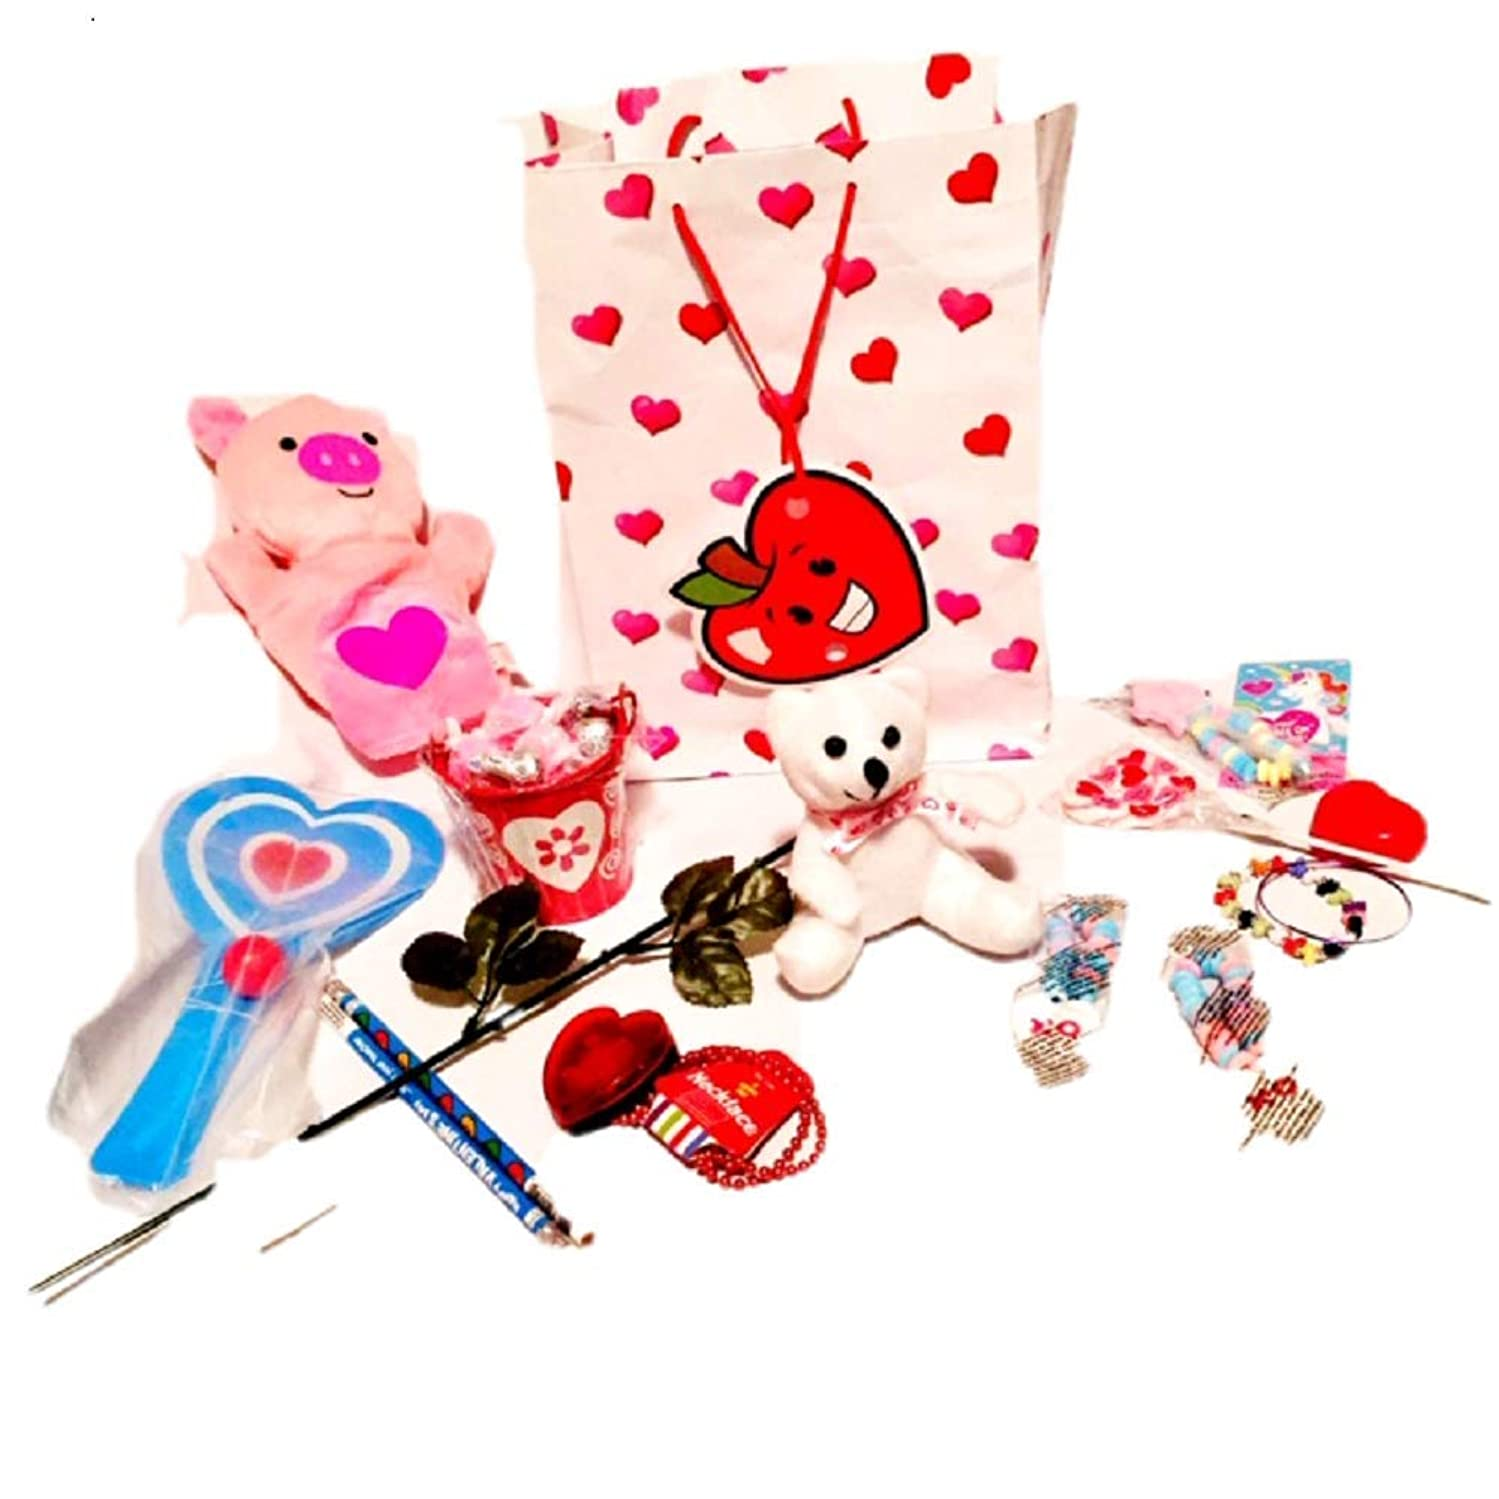 Pre-Filled Valentine's Day Gift Bag for Kids 4yrs and Up 14+ Item Bundle